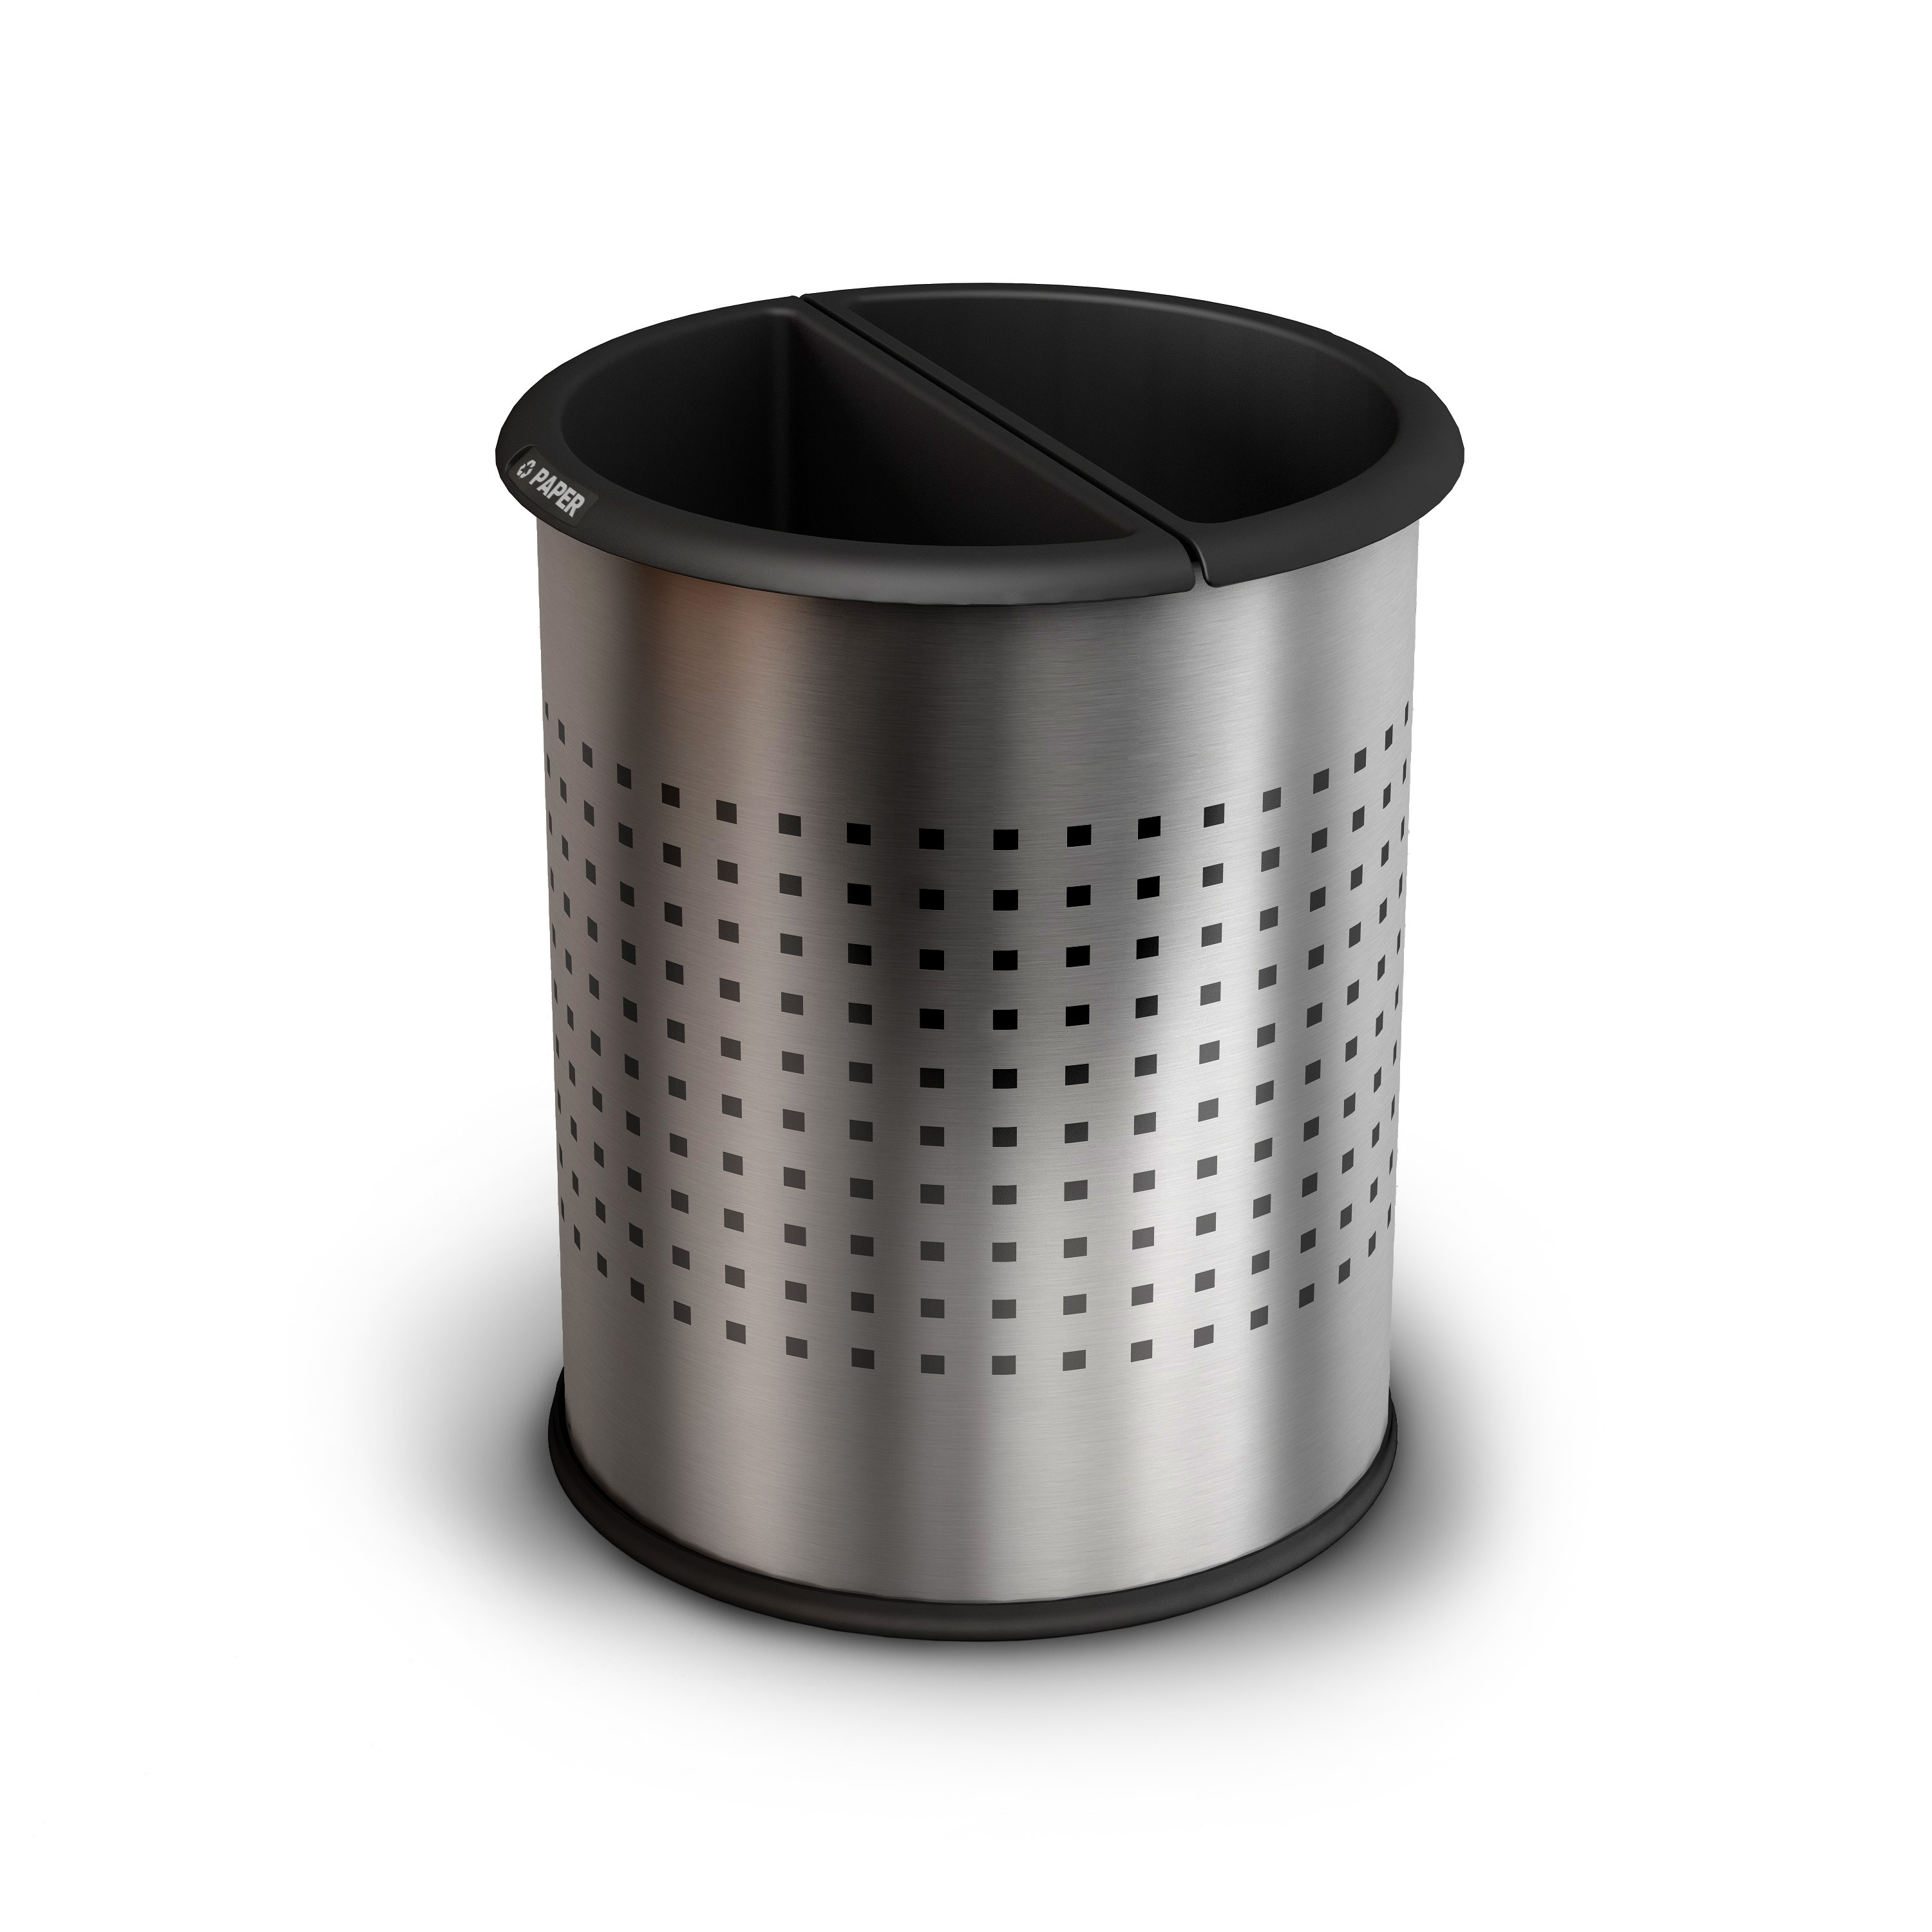 InnRoom Decorative Stainless Steel Waste Basket